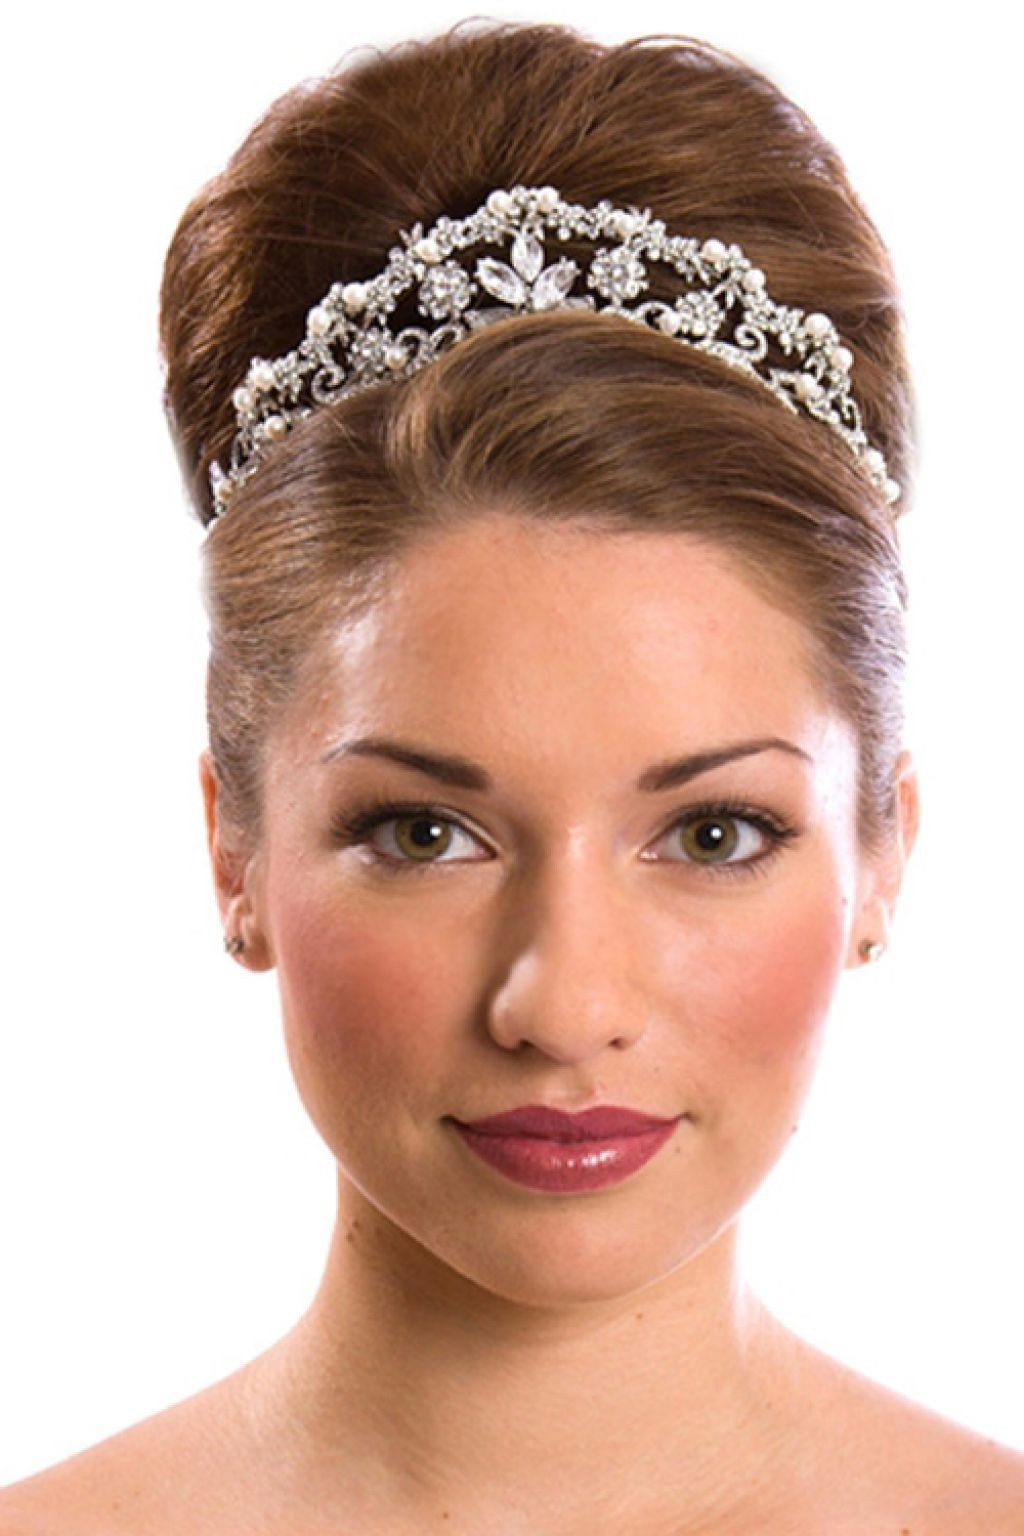 Hair accessories for updos hairstyles - Wedding Hairstyles With Tiara Updo